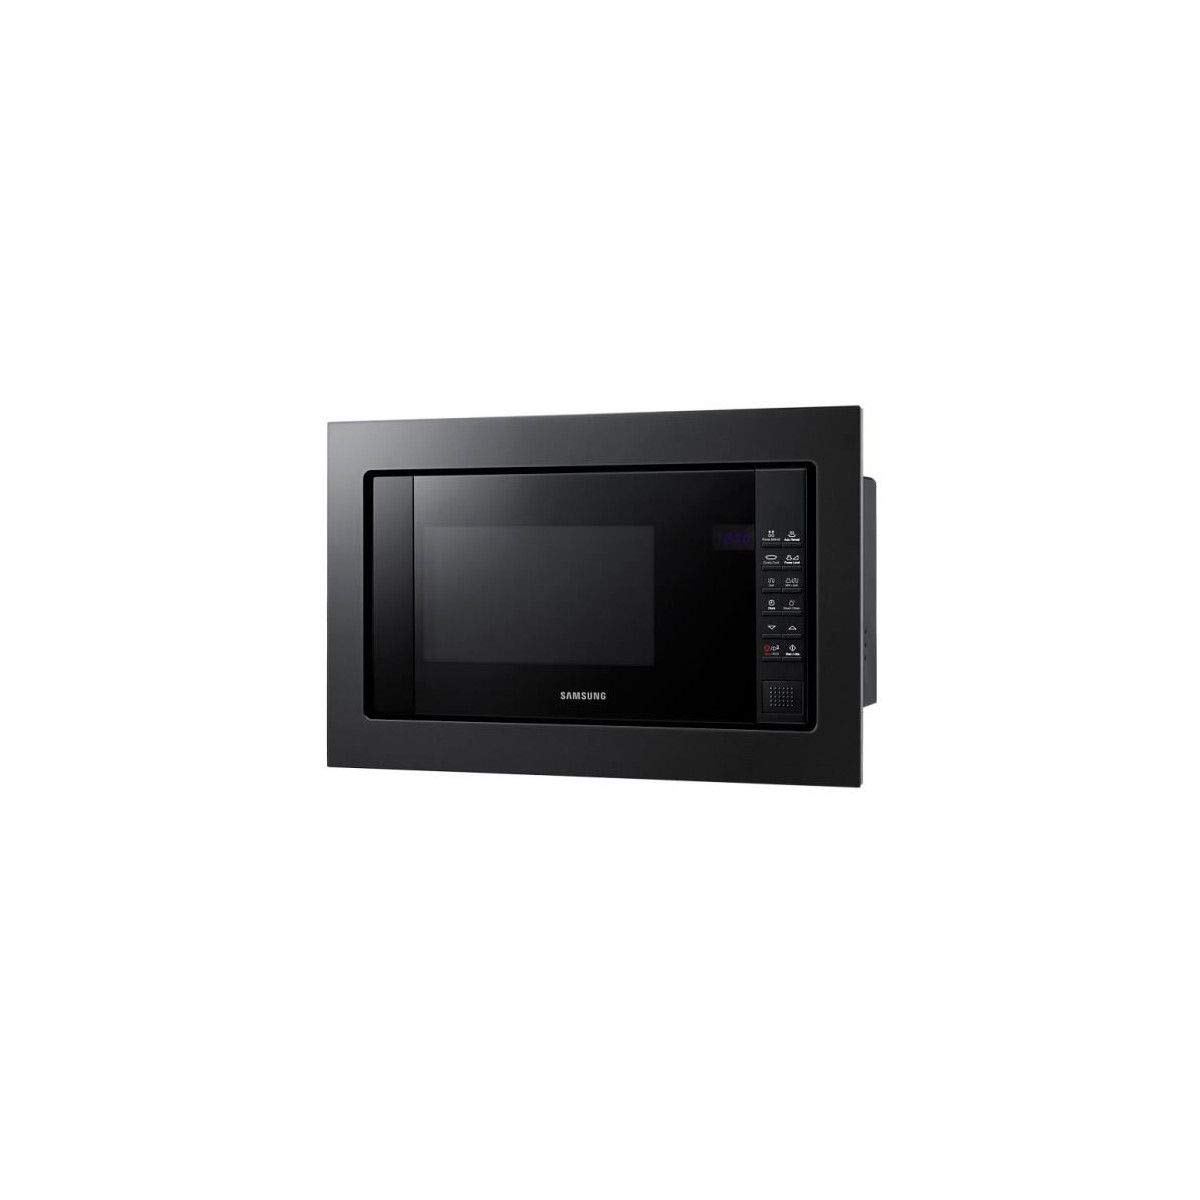 SAMSUNG FG77SUB/XEF - Micro-ondes Gril encastrable 20L ...